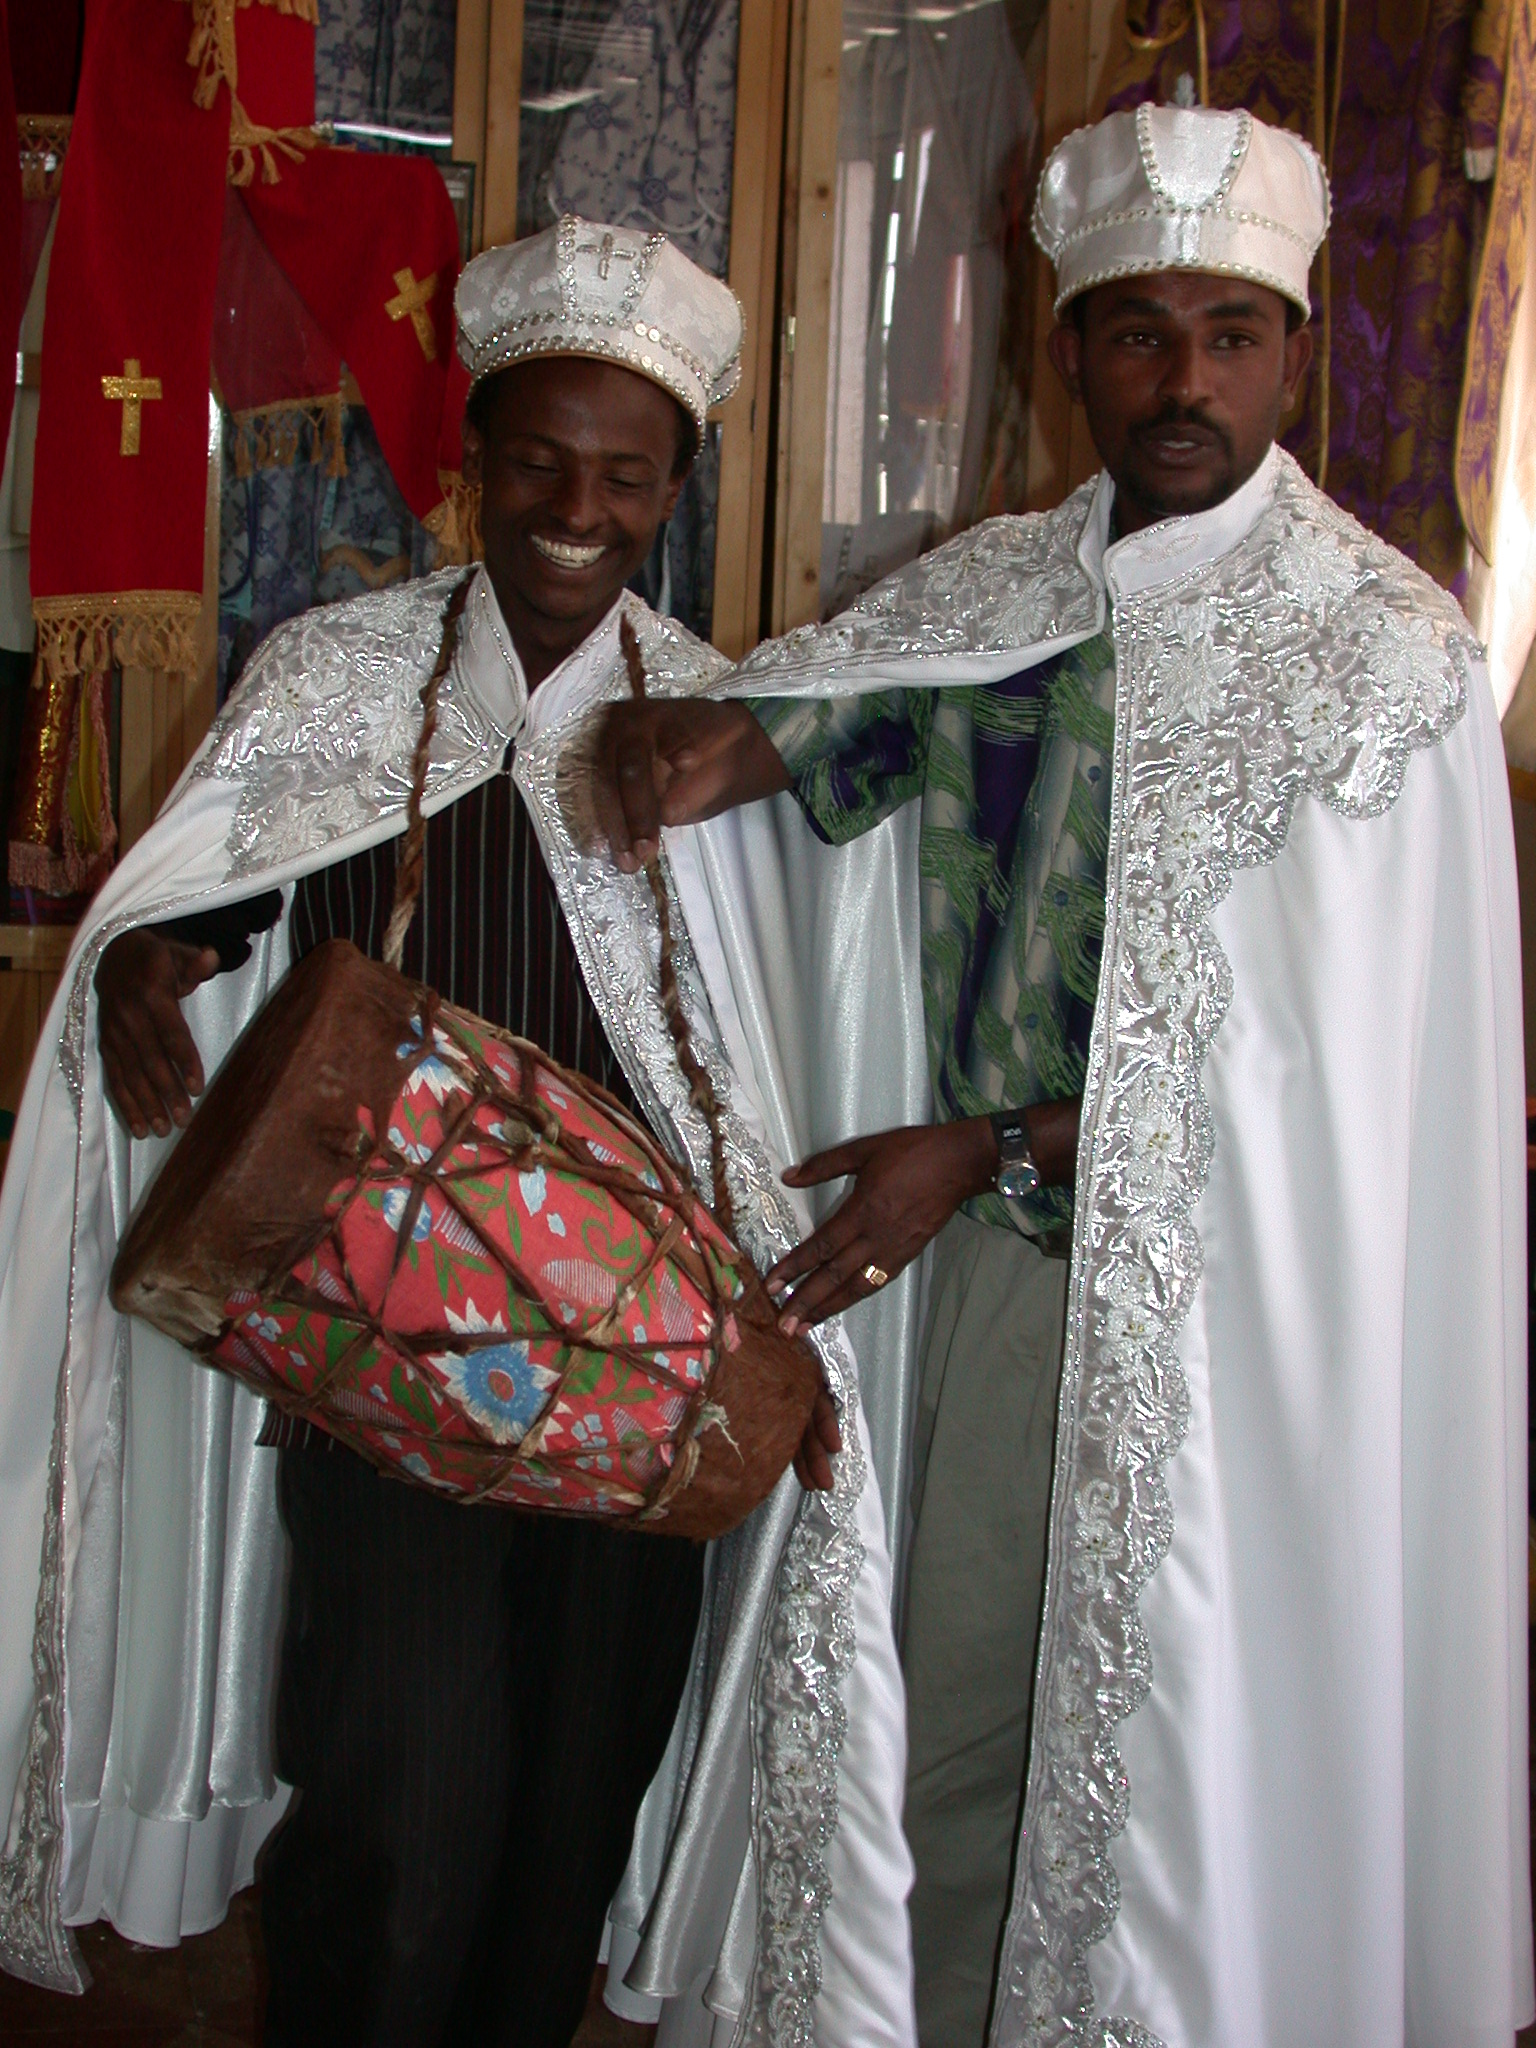 Shop Employee and Tamir in Wedding Gowns at Church Shop, Addis Ababa, Ethiopia